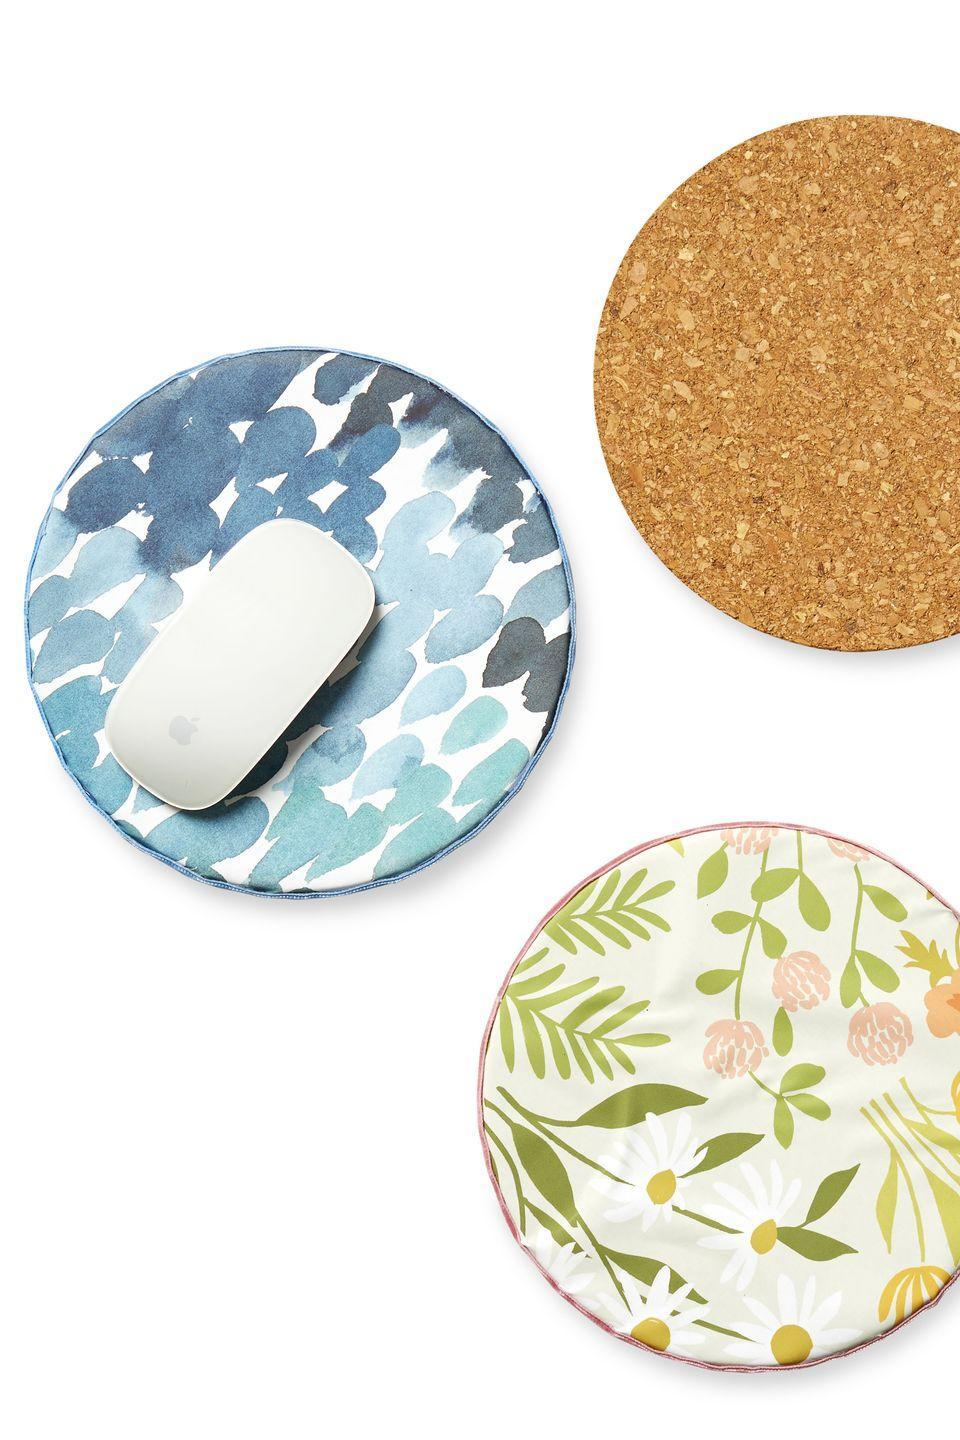 """<p>Give Mom something pretty to look at while she works with a DIY mousepad made out of cork and fabric.</p><p><strong><em>Get the tutorial at <a href=""""https://www.purelykatie.com/diy-fabric-mouse-pad/"""" rel=""""nofollow noopener"""" target=""""_blank"""" data-ylk=""""slk:Purely Katie."""" class=""""link rapid-noclick-resp"""">Purely Katie.</a></em></strong></p>"""